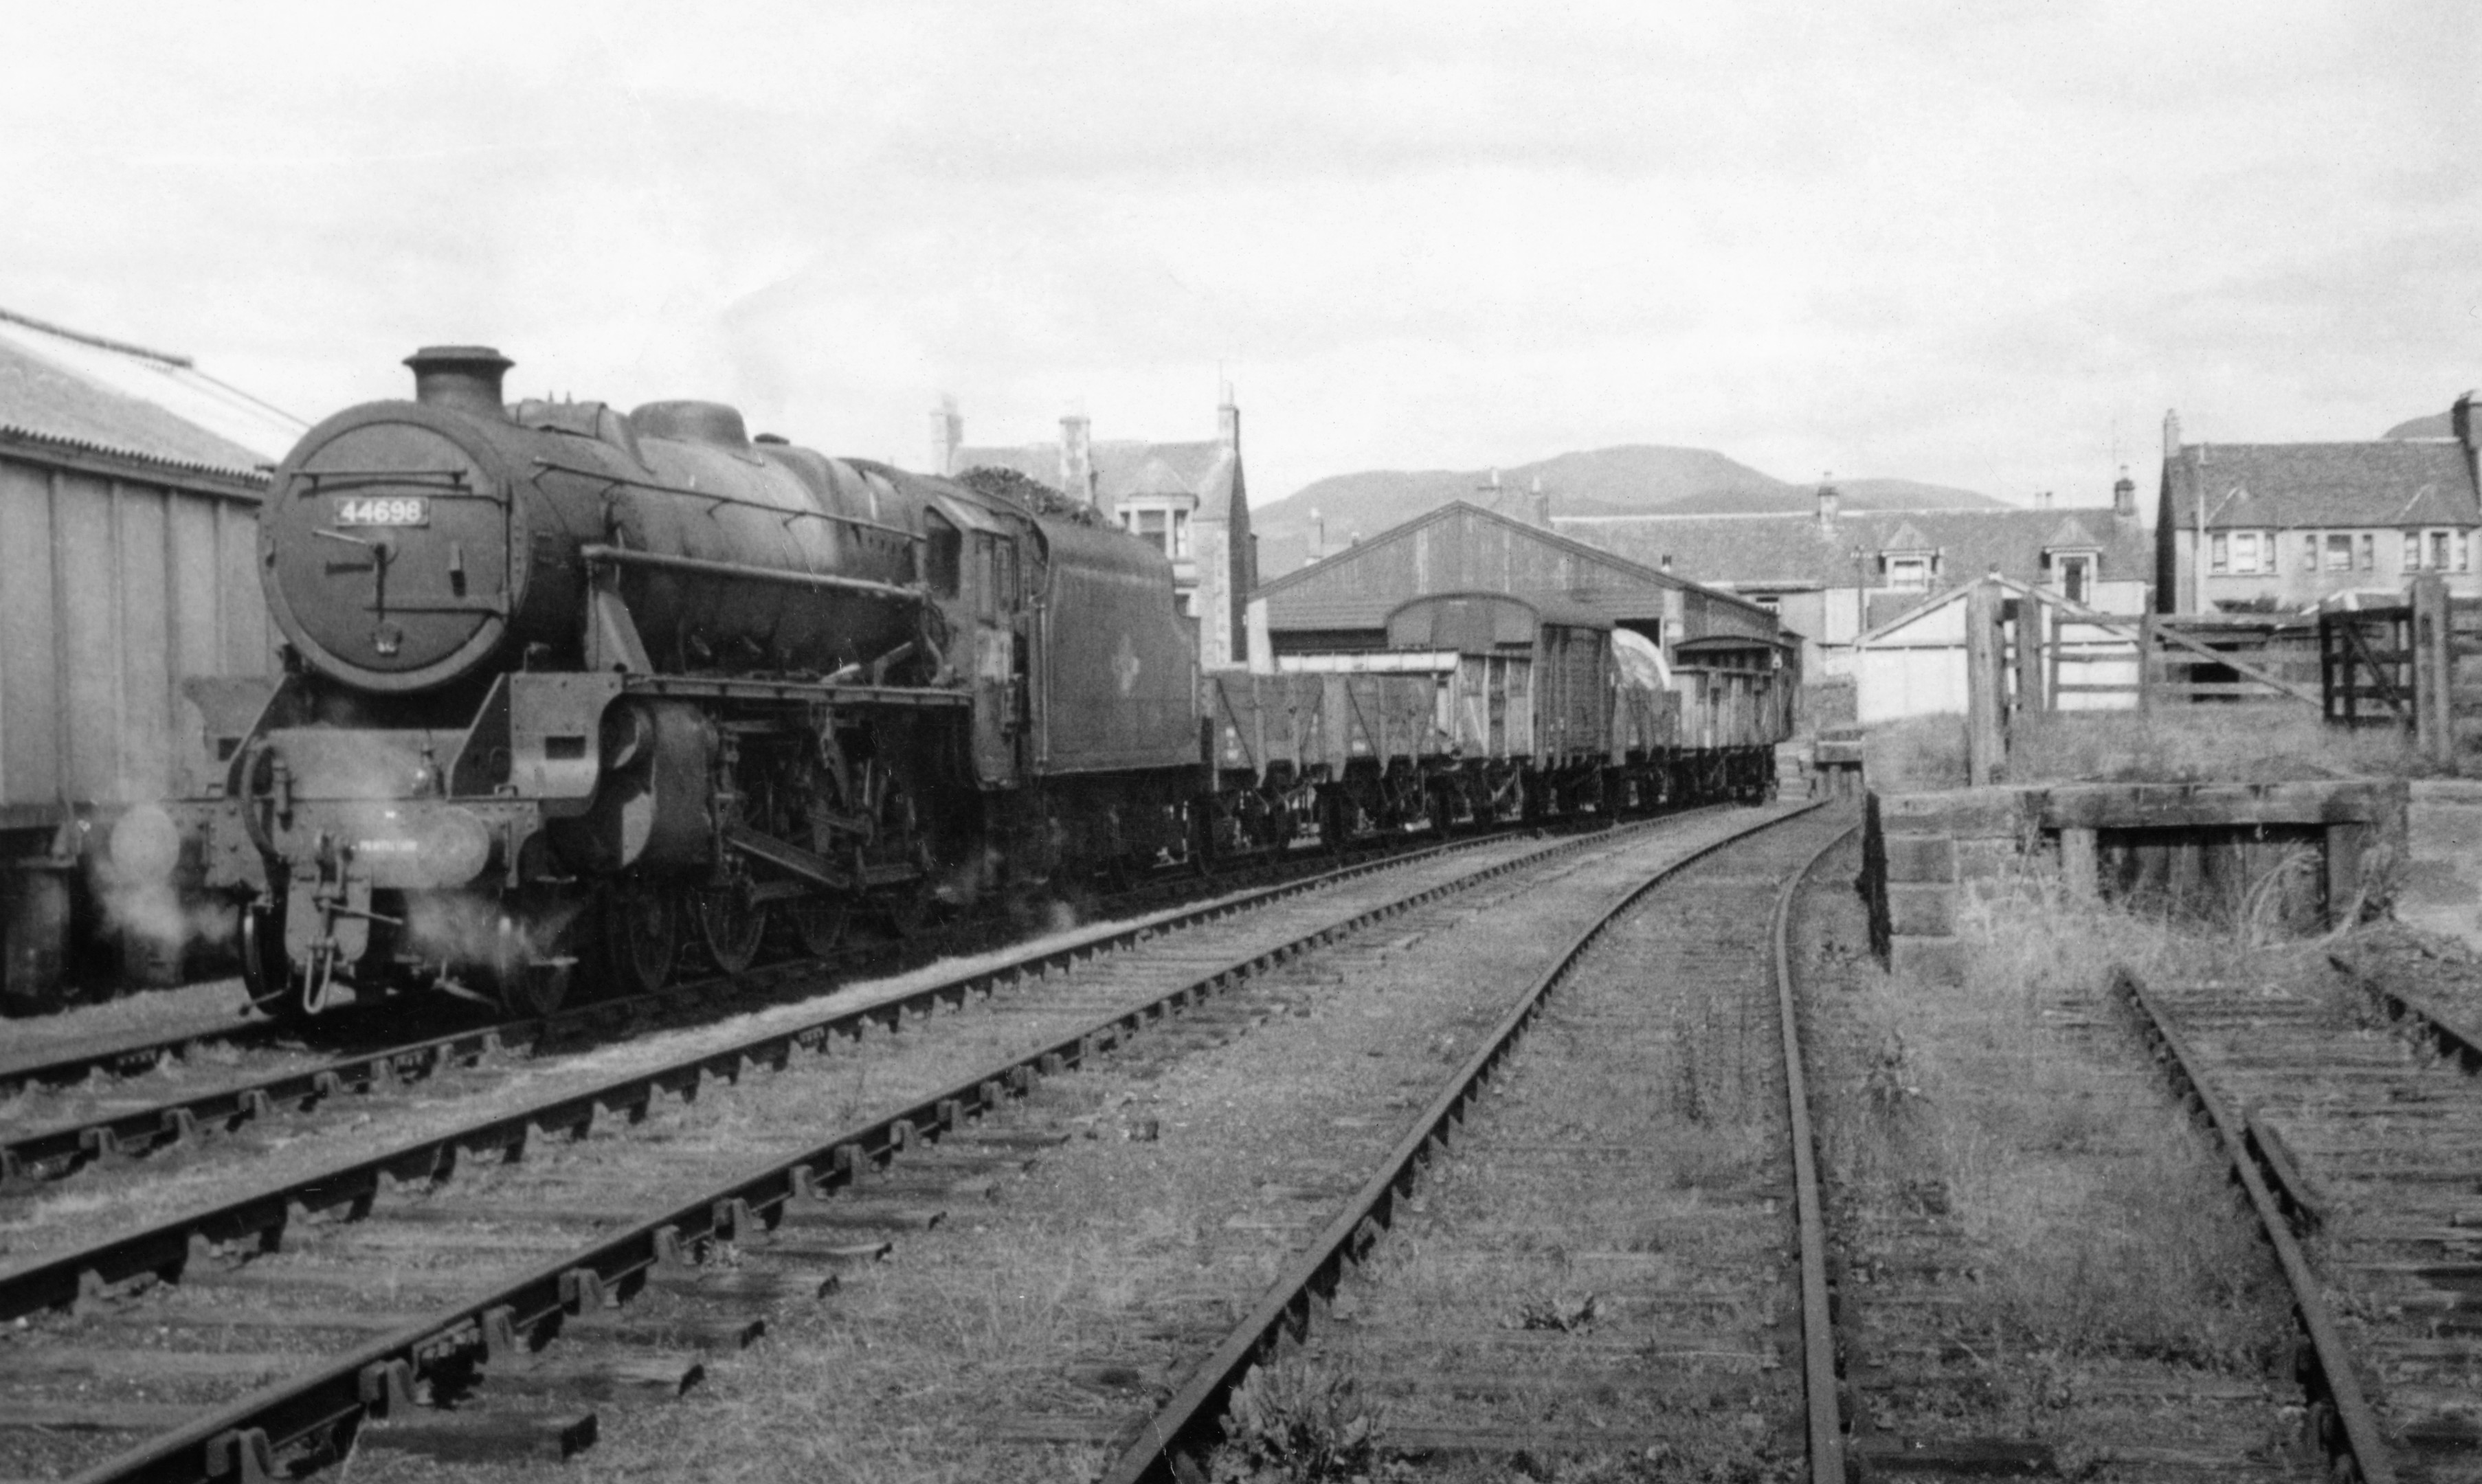 A train being shunted in the Crieff yard in the mid 60s.